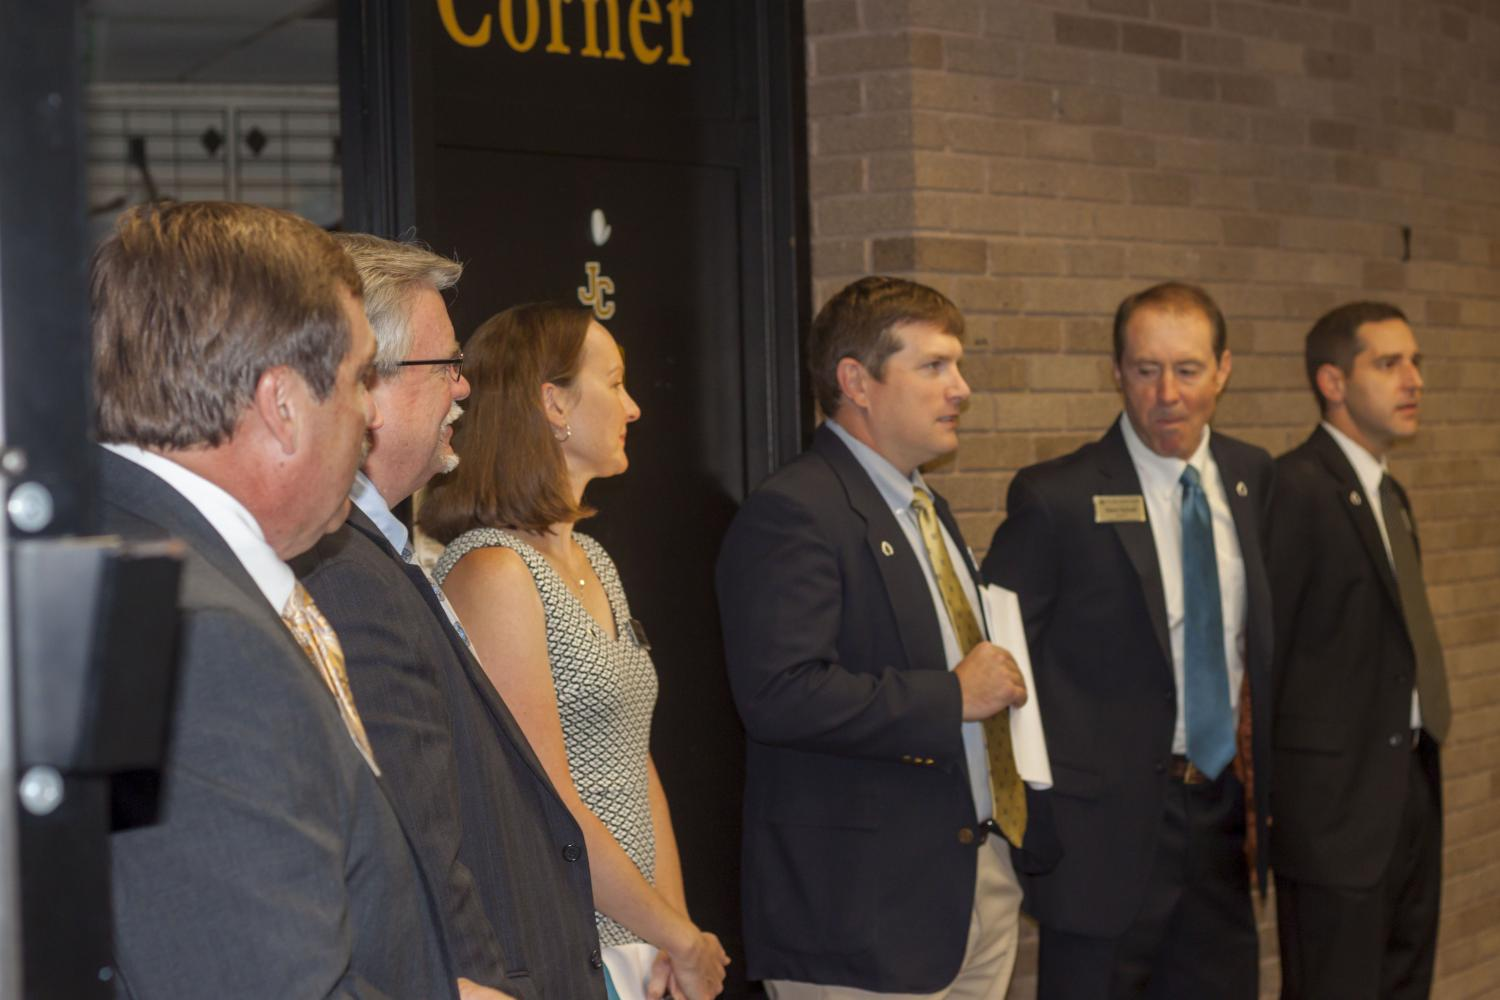 The newly appointed deans line up to greet incoming freshmen and their parents.